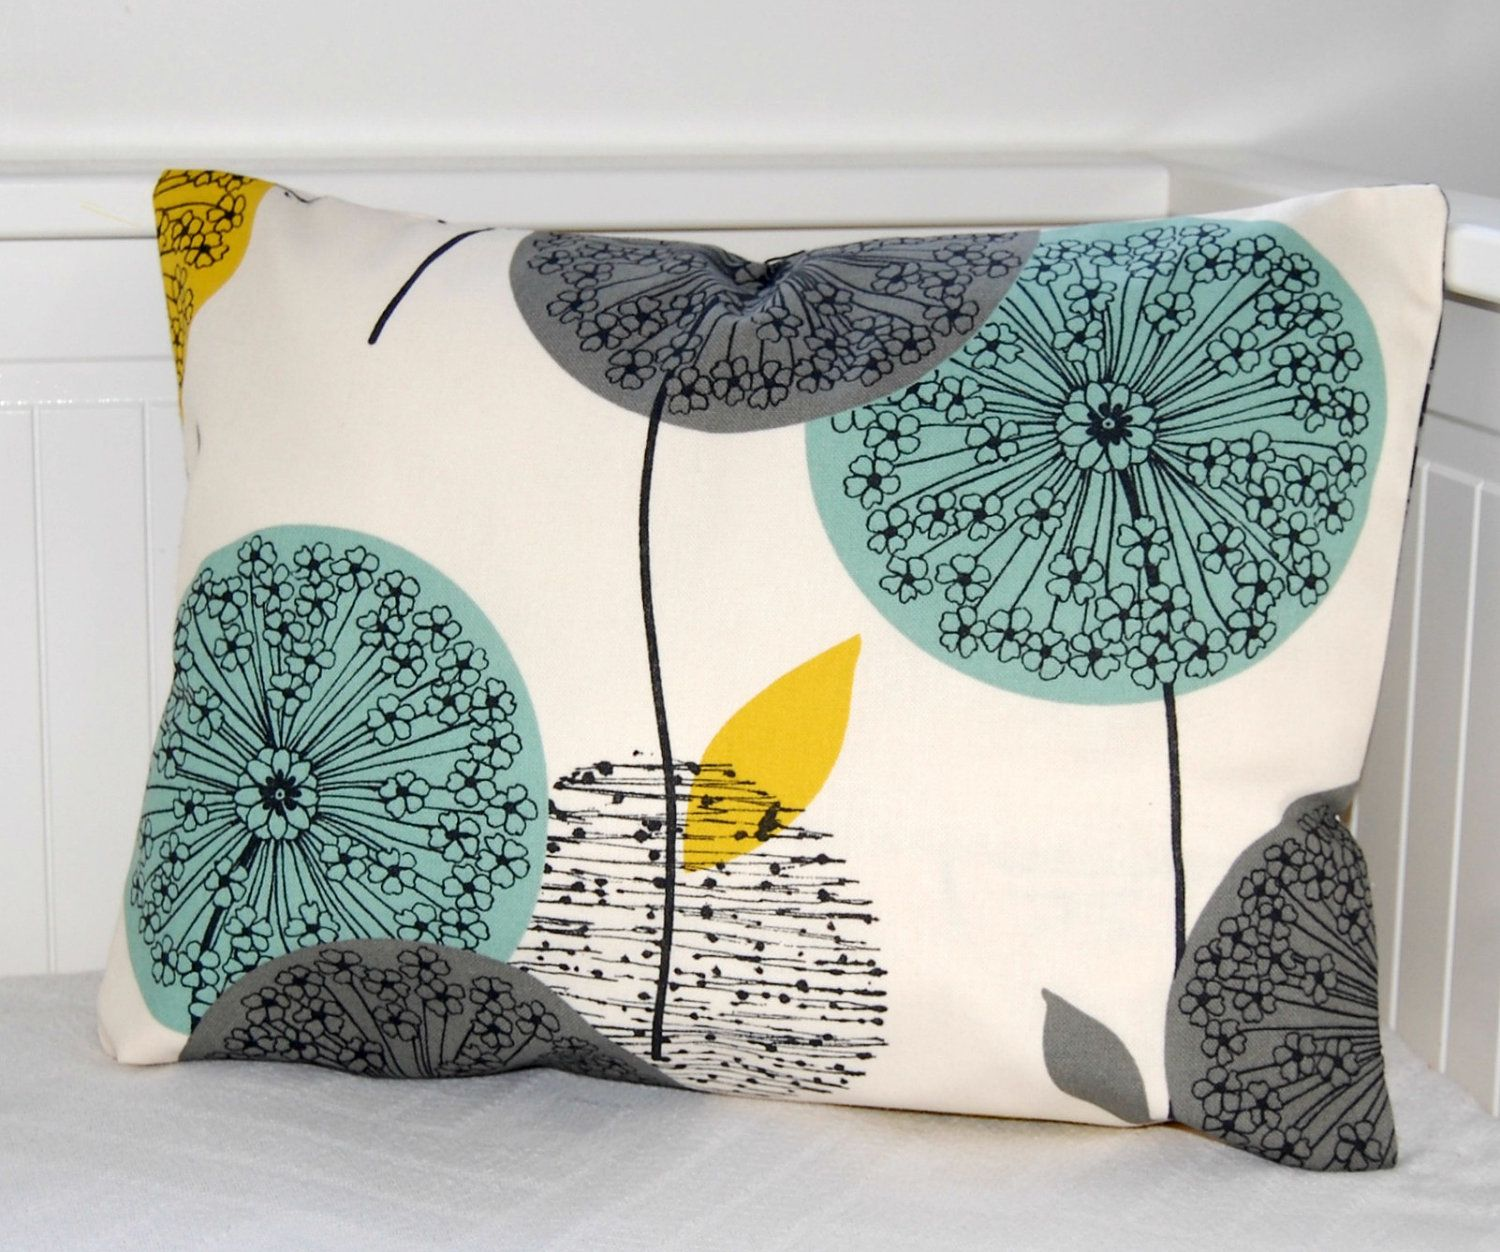 Sofa Cushion Covers Etsy: decorative pillow cover teal grey mustard  dandelion sofa cushion    ,